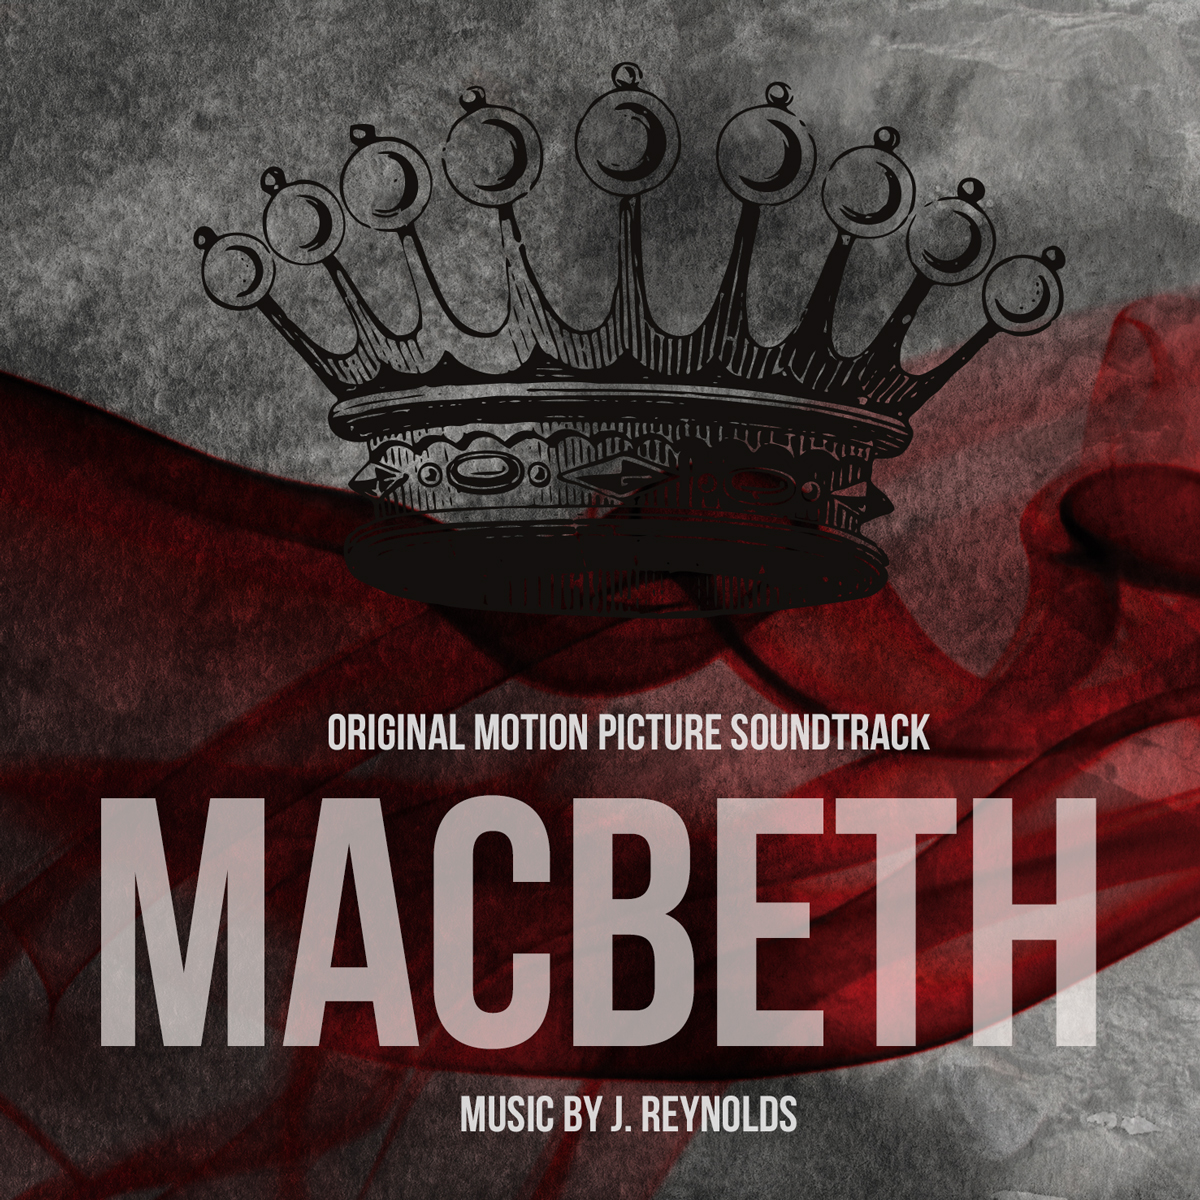 Macbeth Marketing Materials